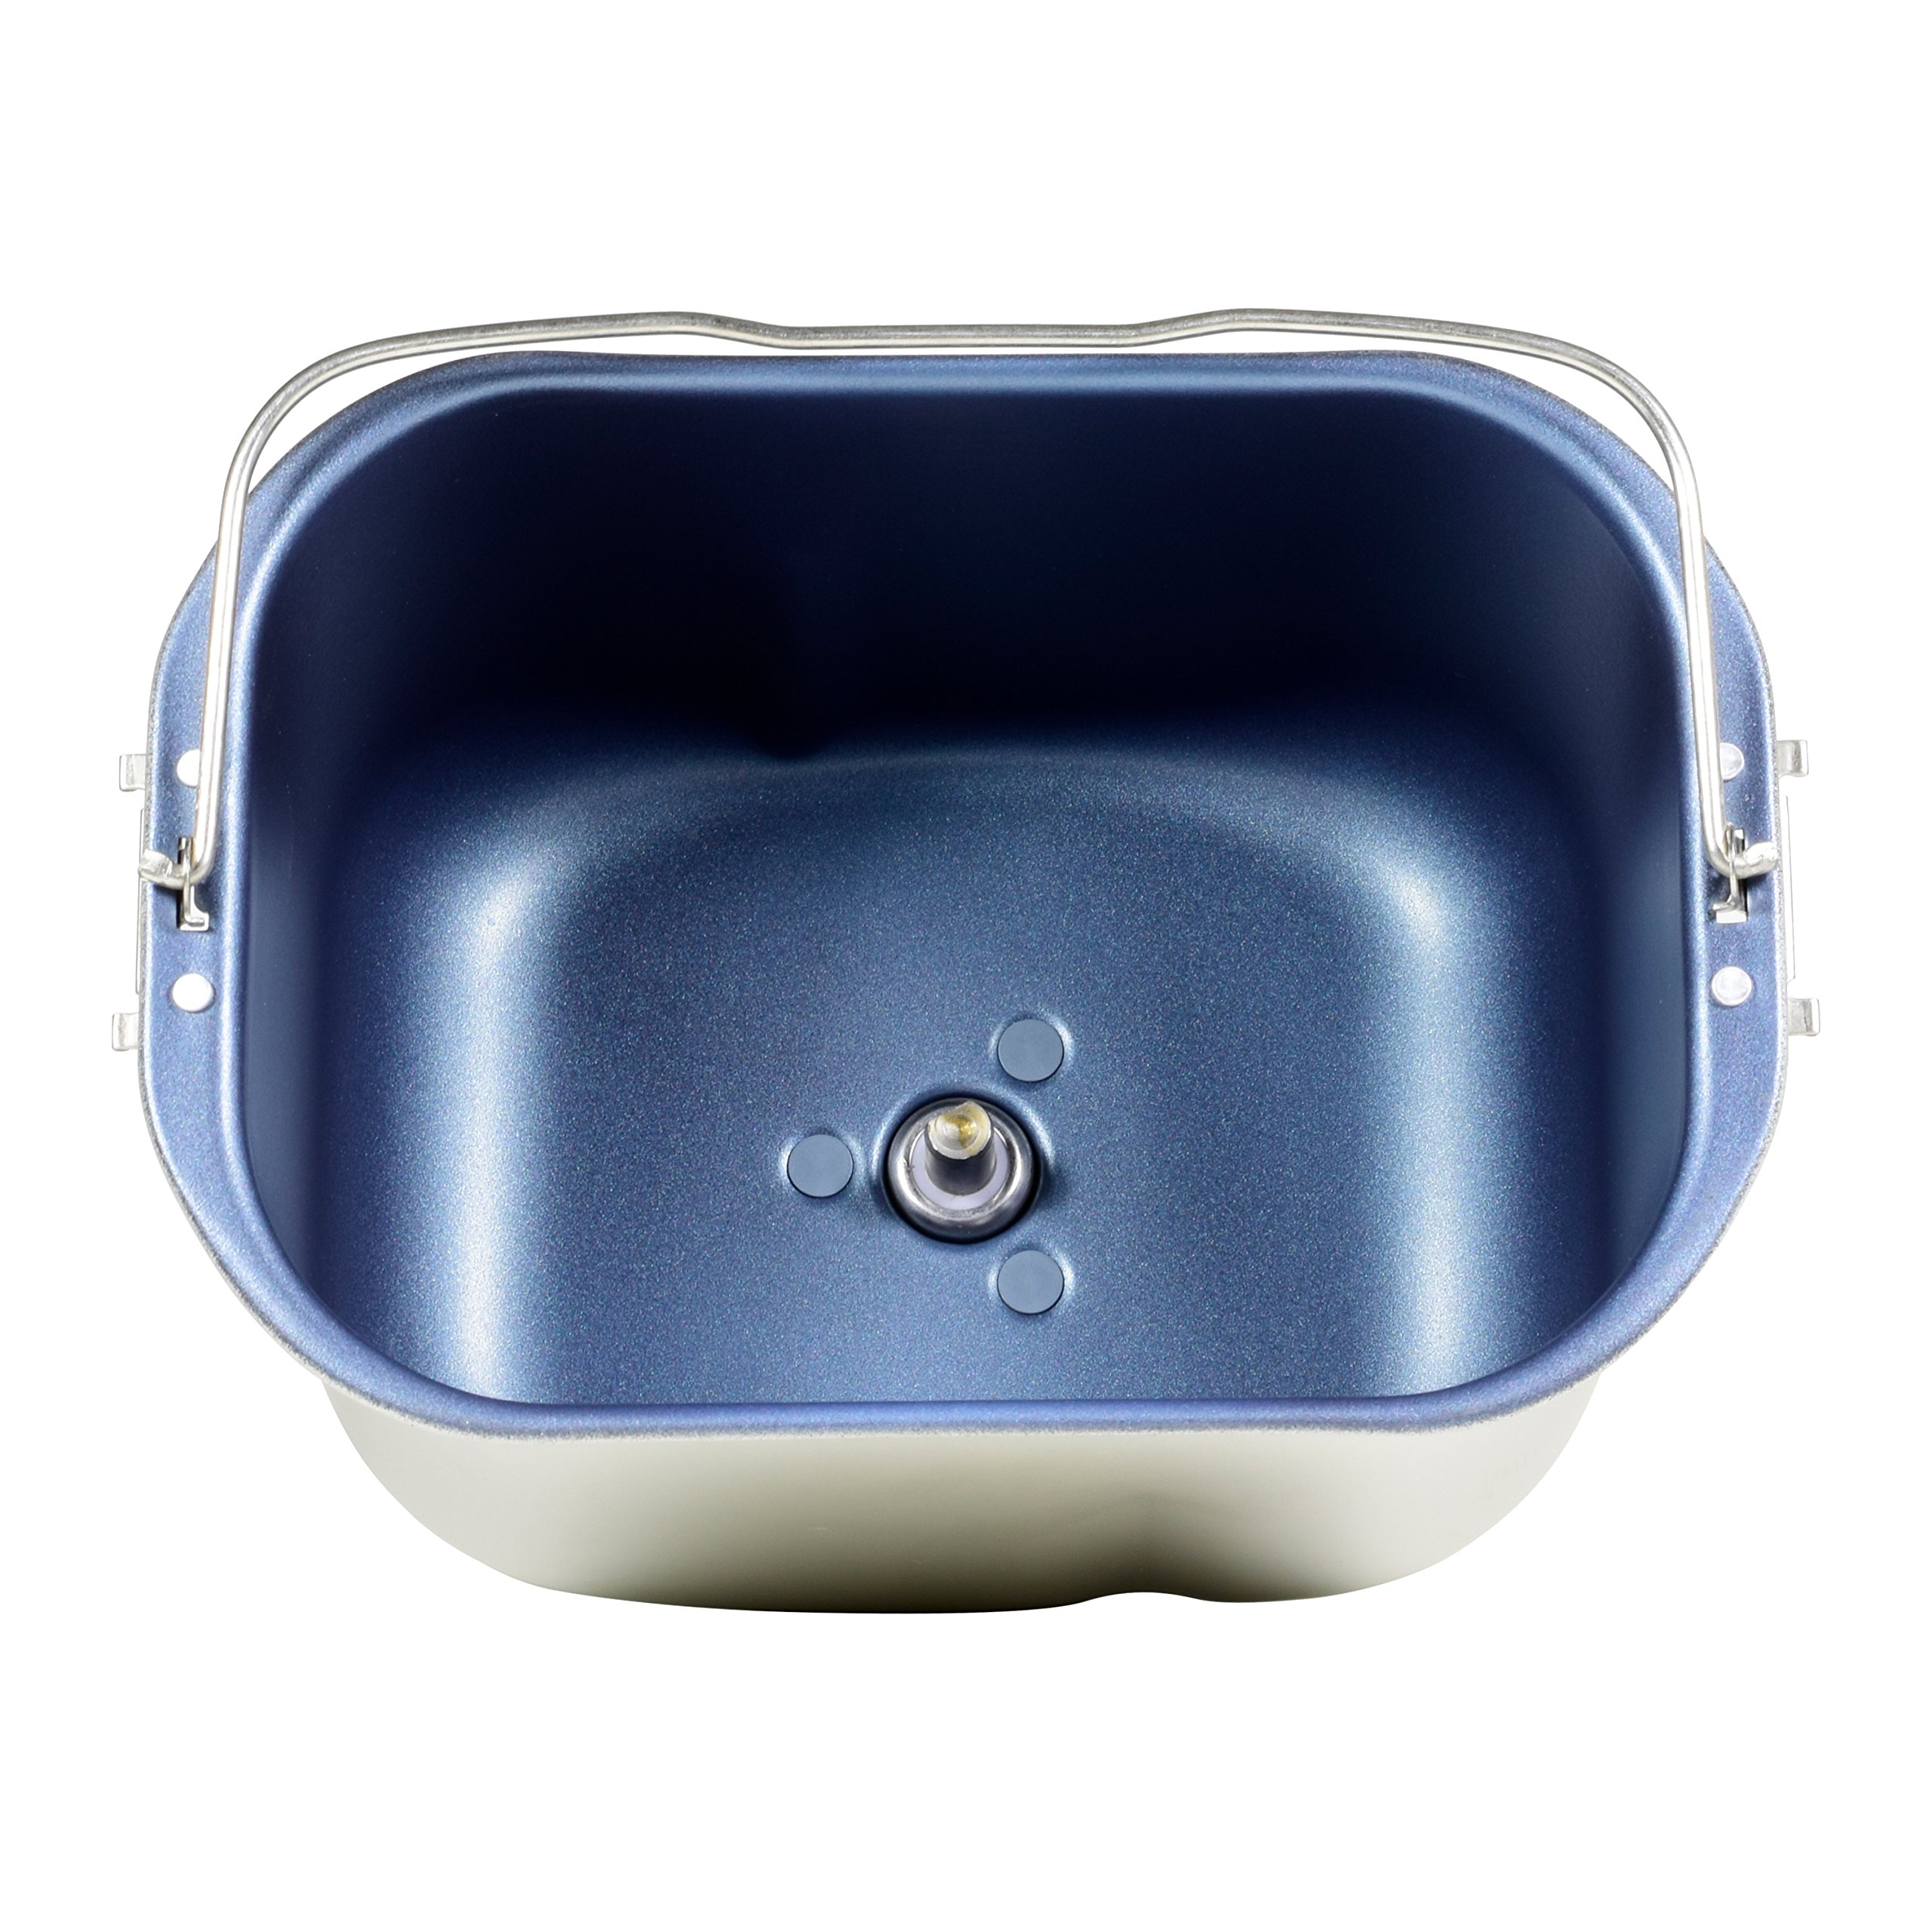 Univen (102529-000-000) Breadmaker Bread Pan Replaces Sunbeam Oster by Univen (Image #3)